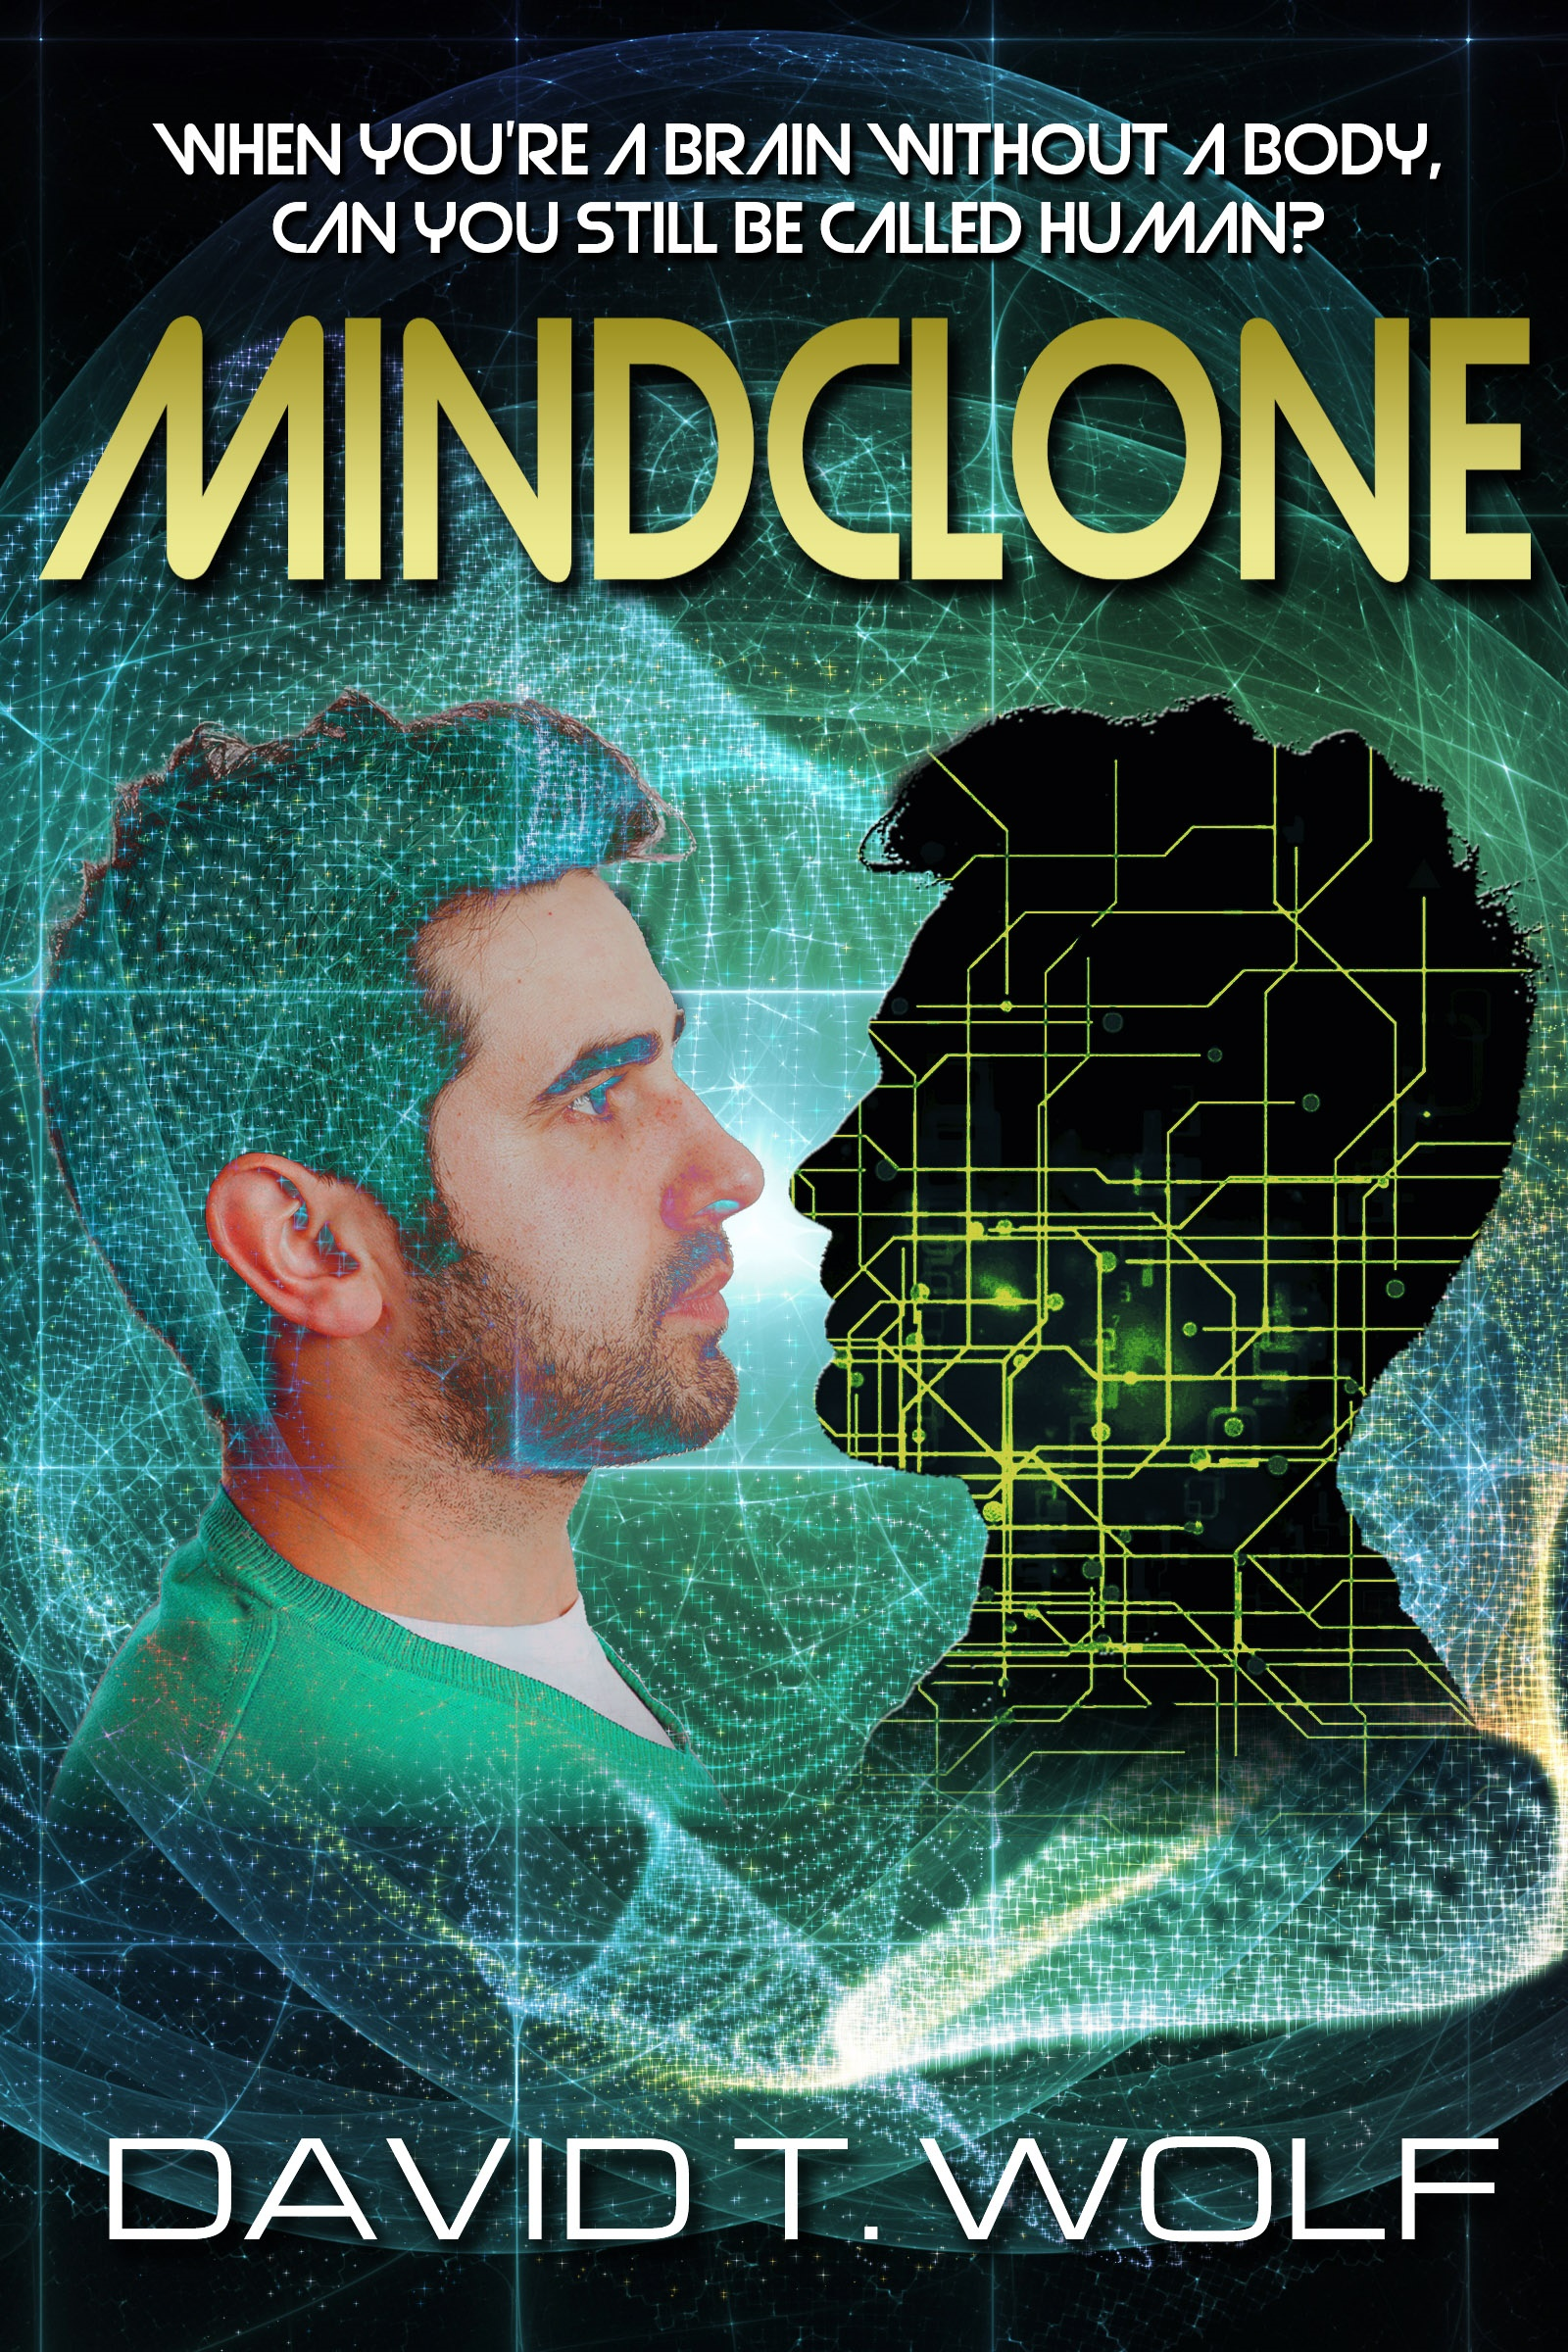 MINDCLONE COMPLETE Final Digital Cover